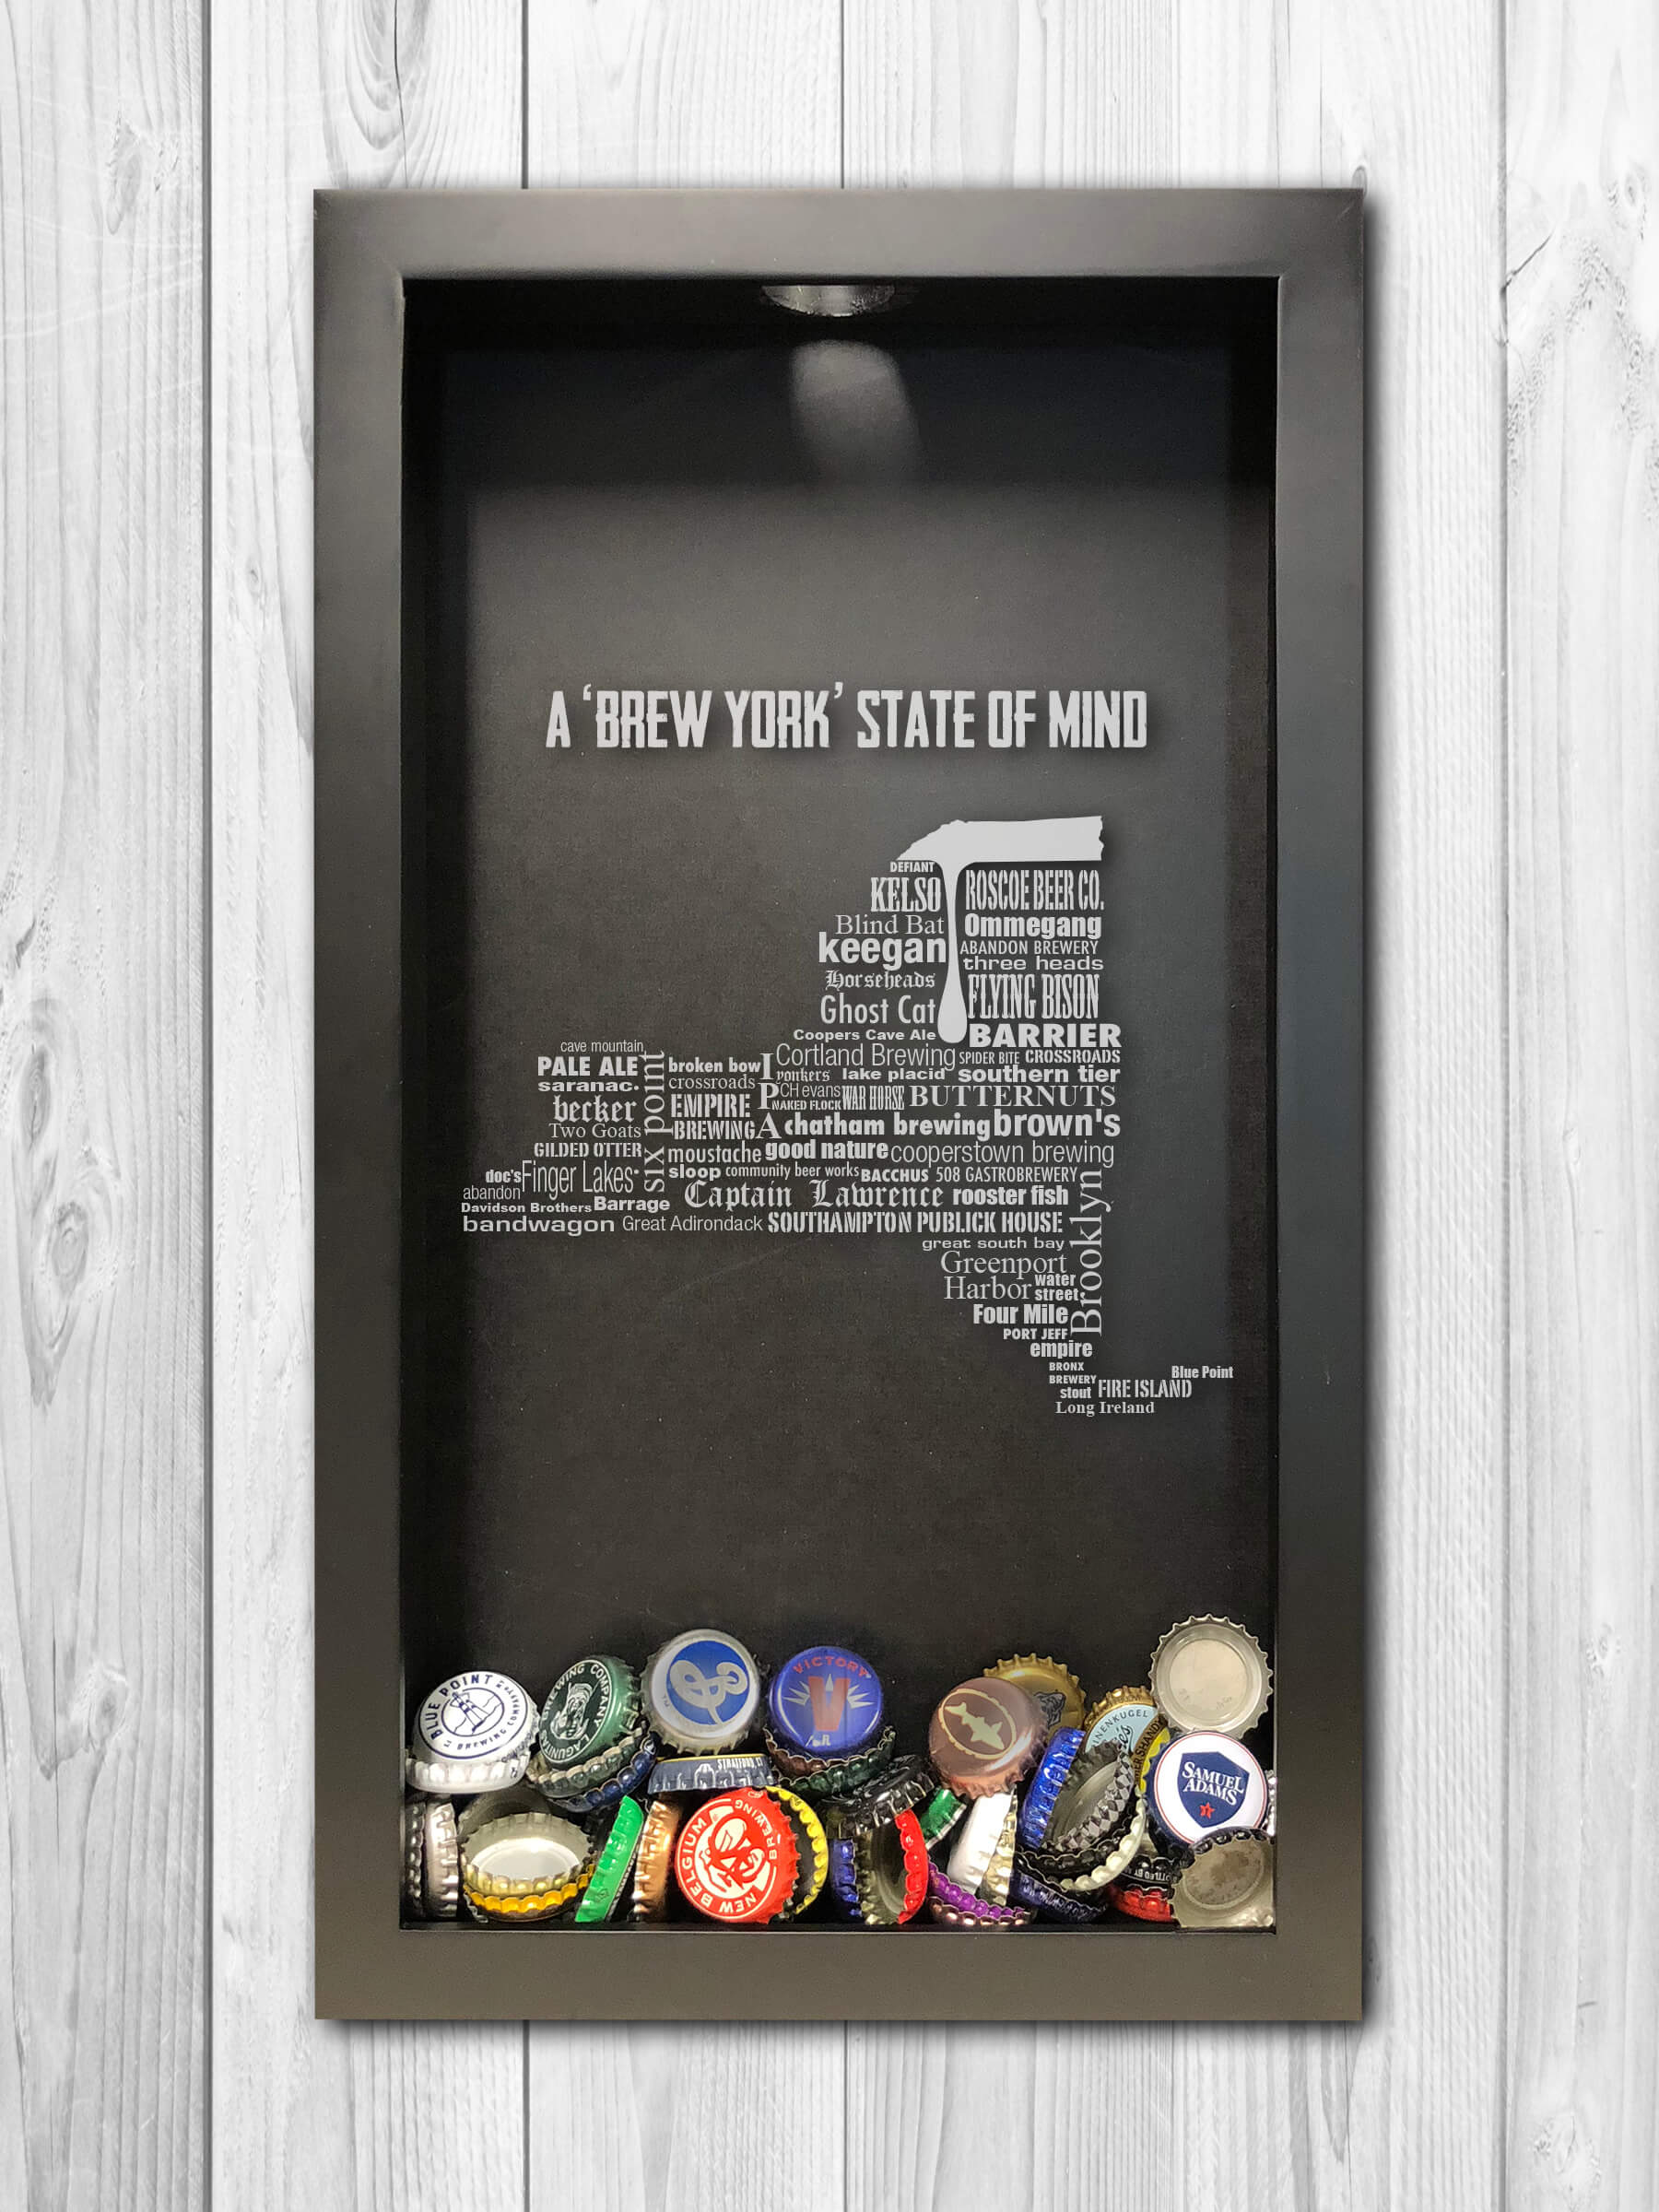 New York state of mind Local Craft Beer Breweries Custom Engraved Shadow Box Beer Cap Collector